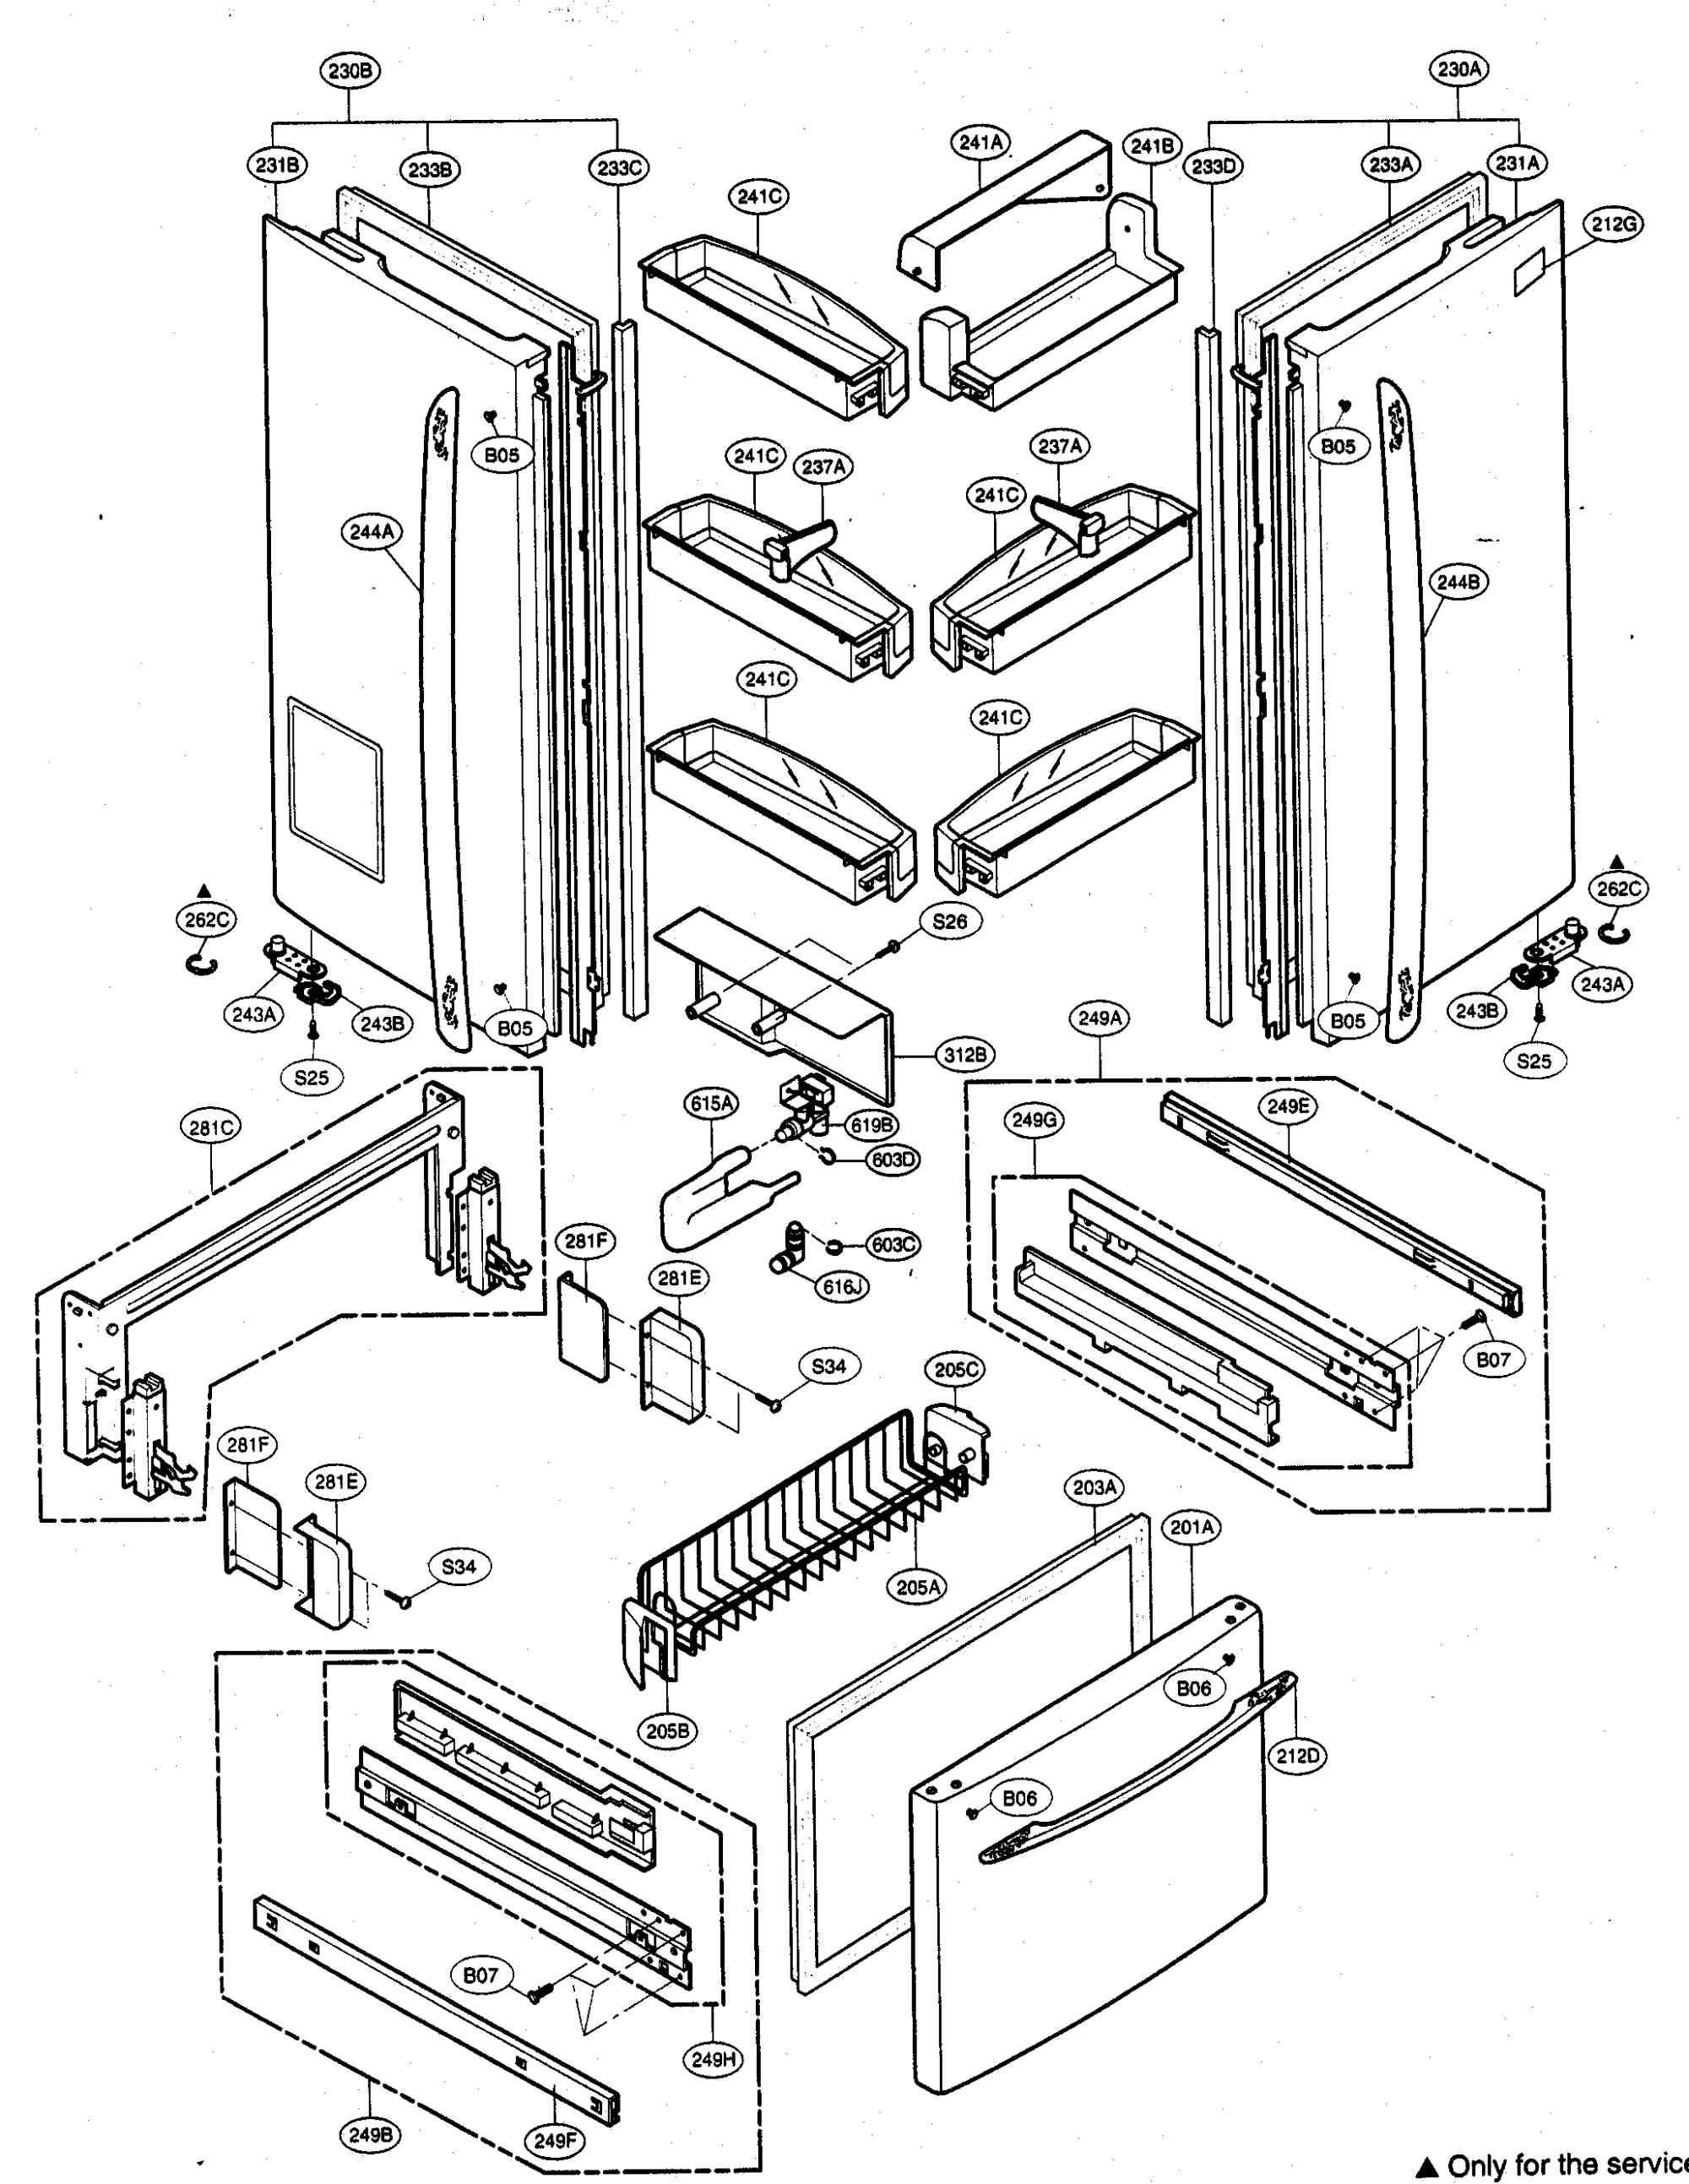 hight resolution of refrigerator parts diagram on kenmore 795 refrigerator parts diagram kenmore refrigerator wiring diagram model 795 77543600